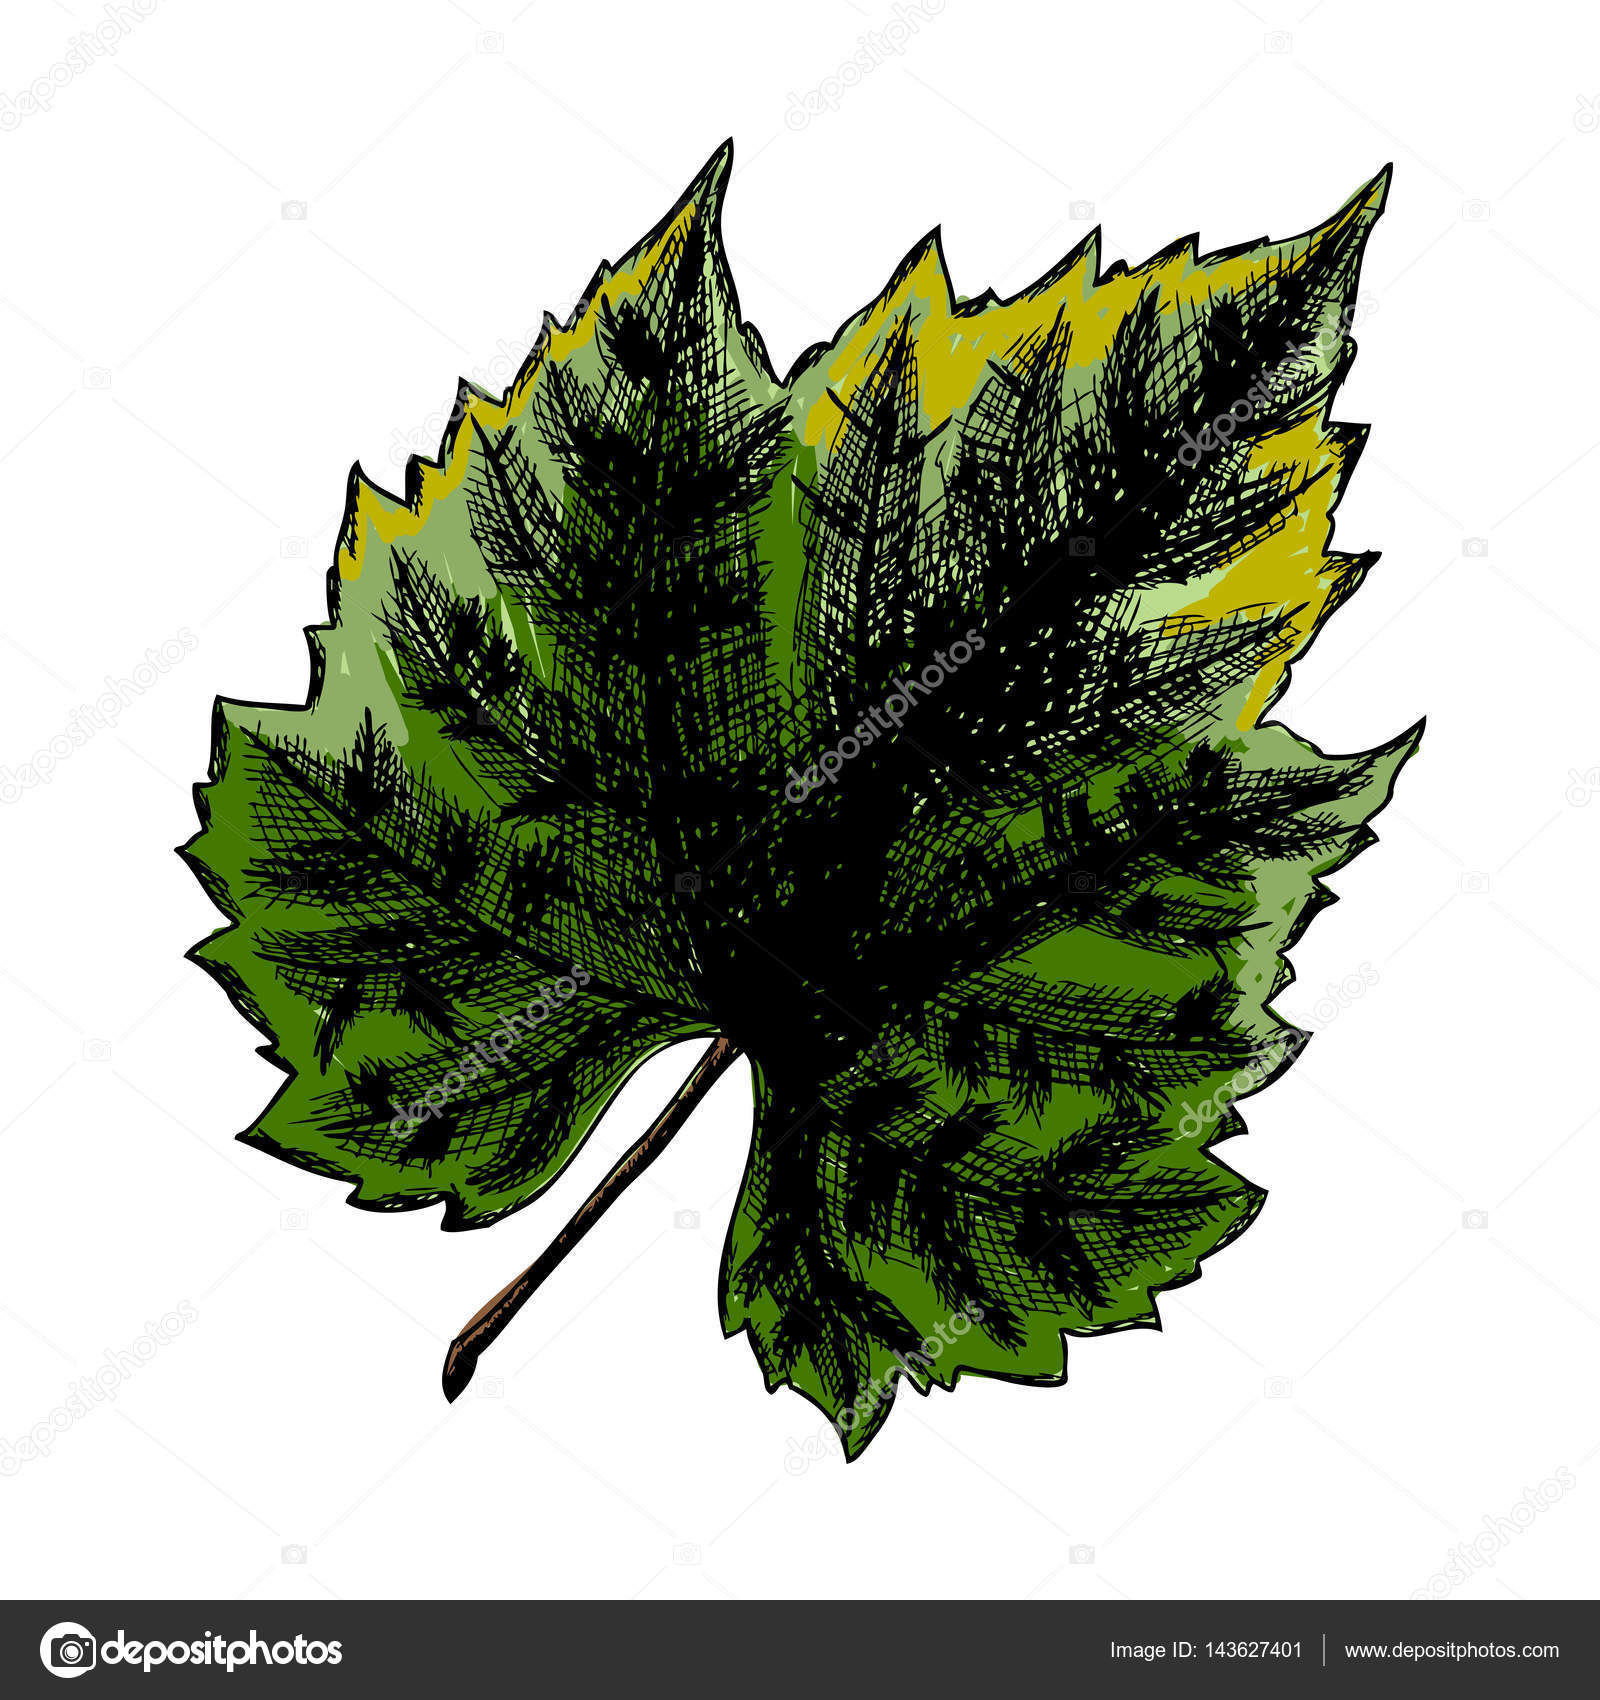 Inked Drawing Of Grape Leaf Stock Photo C Goldenshrimp 143627401